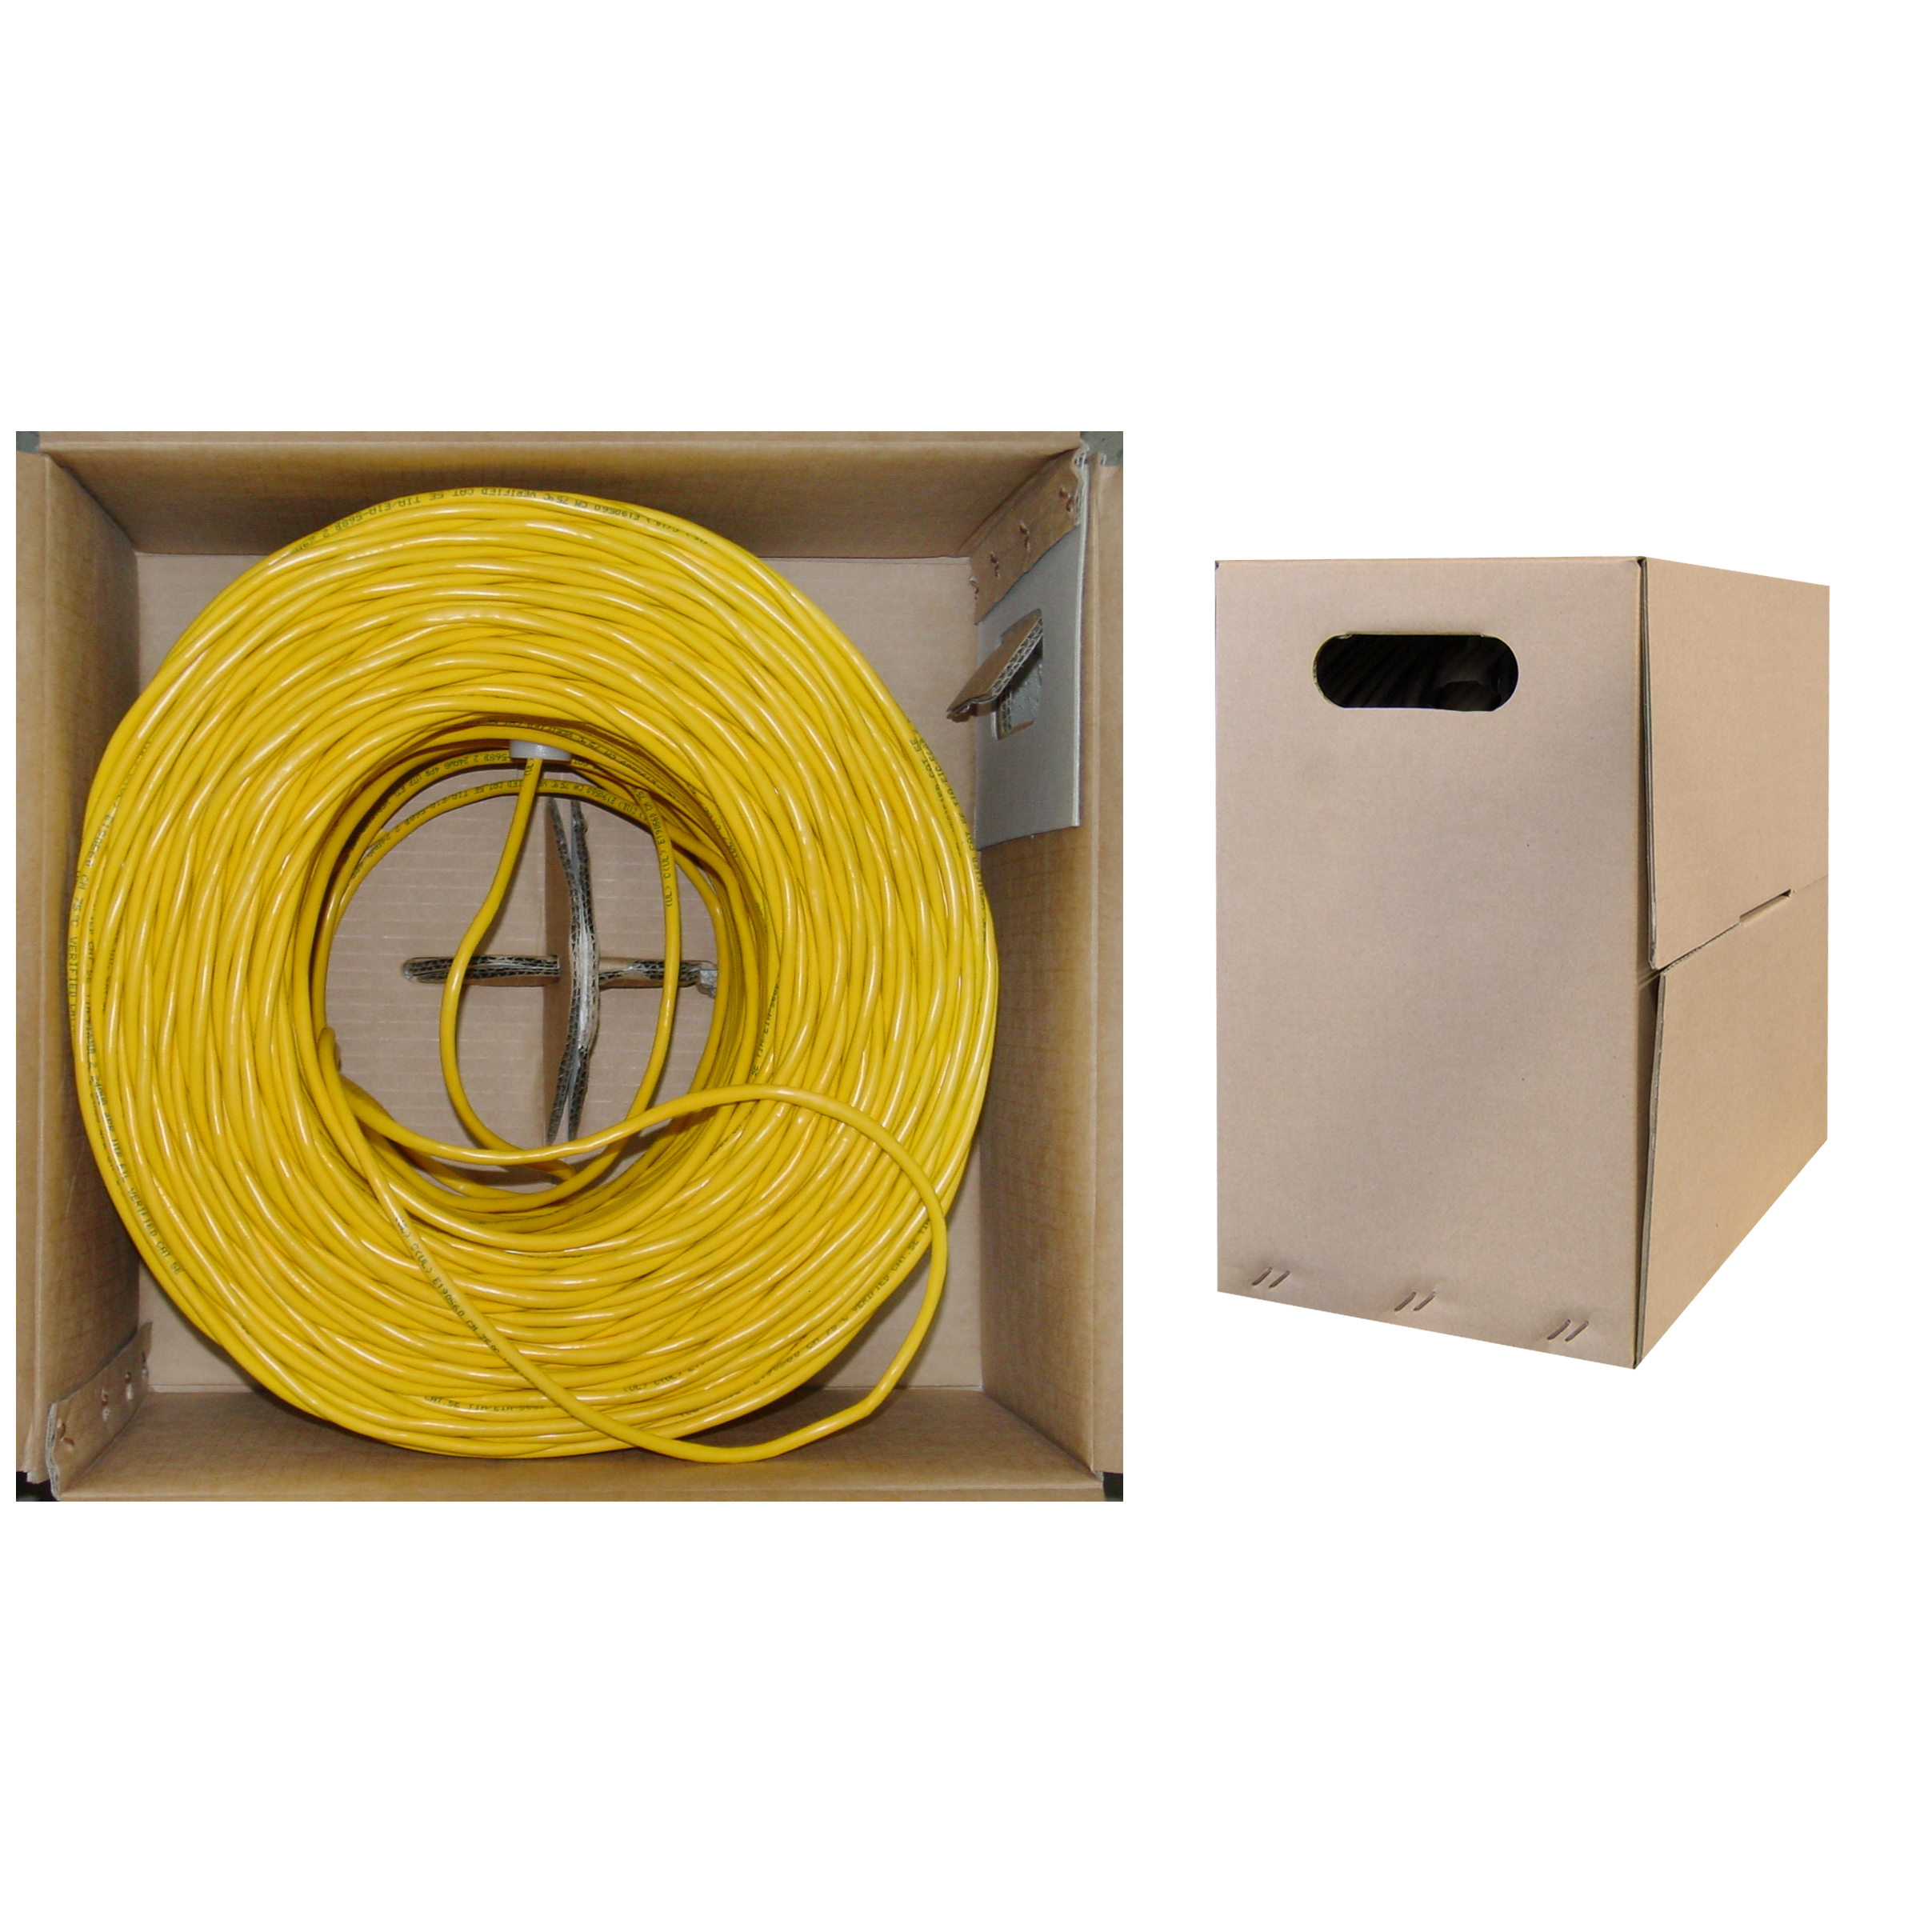 10x6 081th 1000ft stranded cat5e yellow ethernet cable, pullbox Basic Electrical Wiring Diagrams at n-0.co